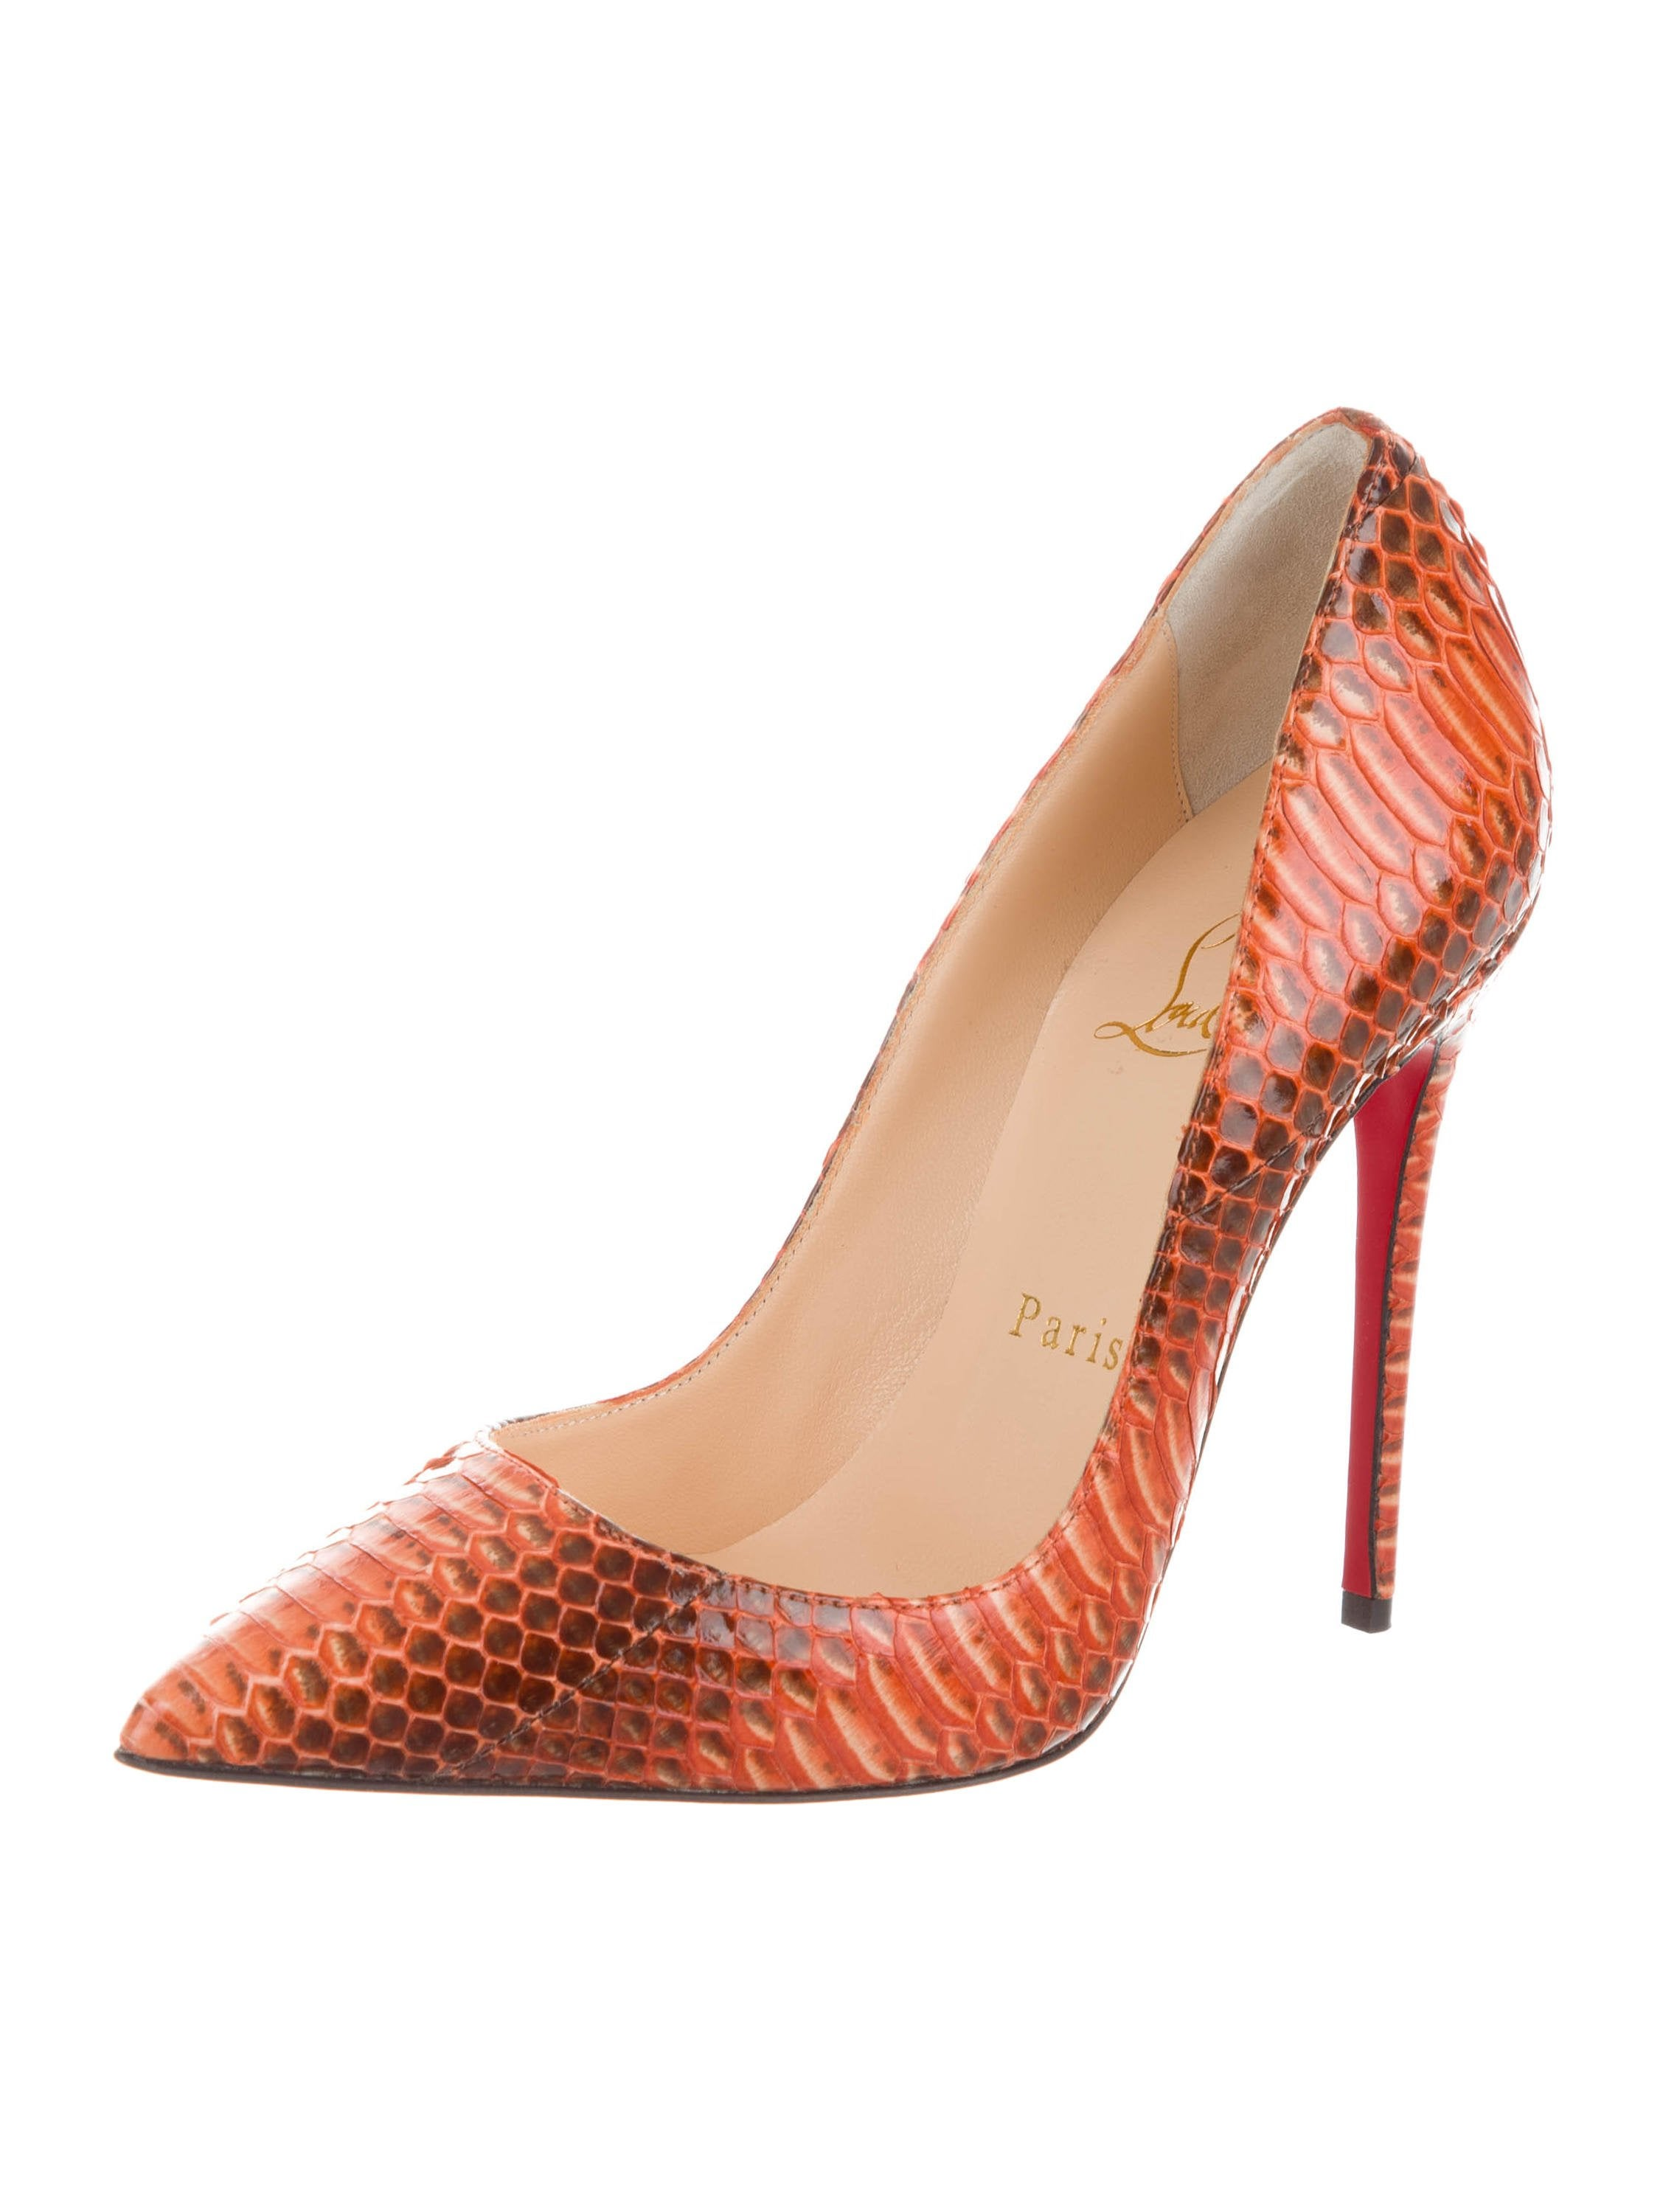 2014 new cheap price buy cheap with mastercard Christian Louboutin Snakeskin Peep-Toe Pumps w/ Tags fast delivery online clearance footlocker finishline Toxdl